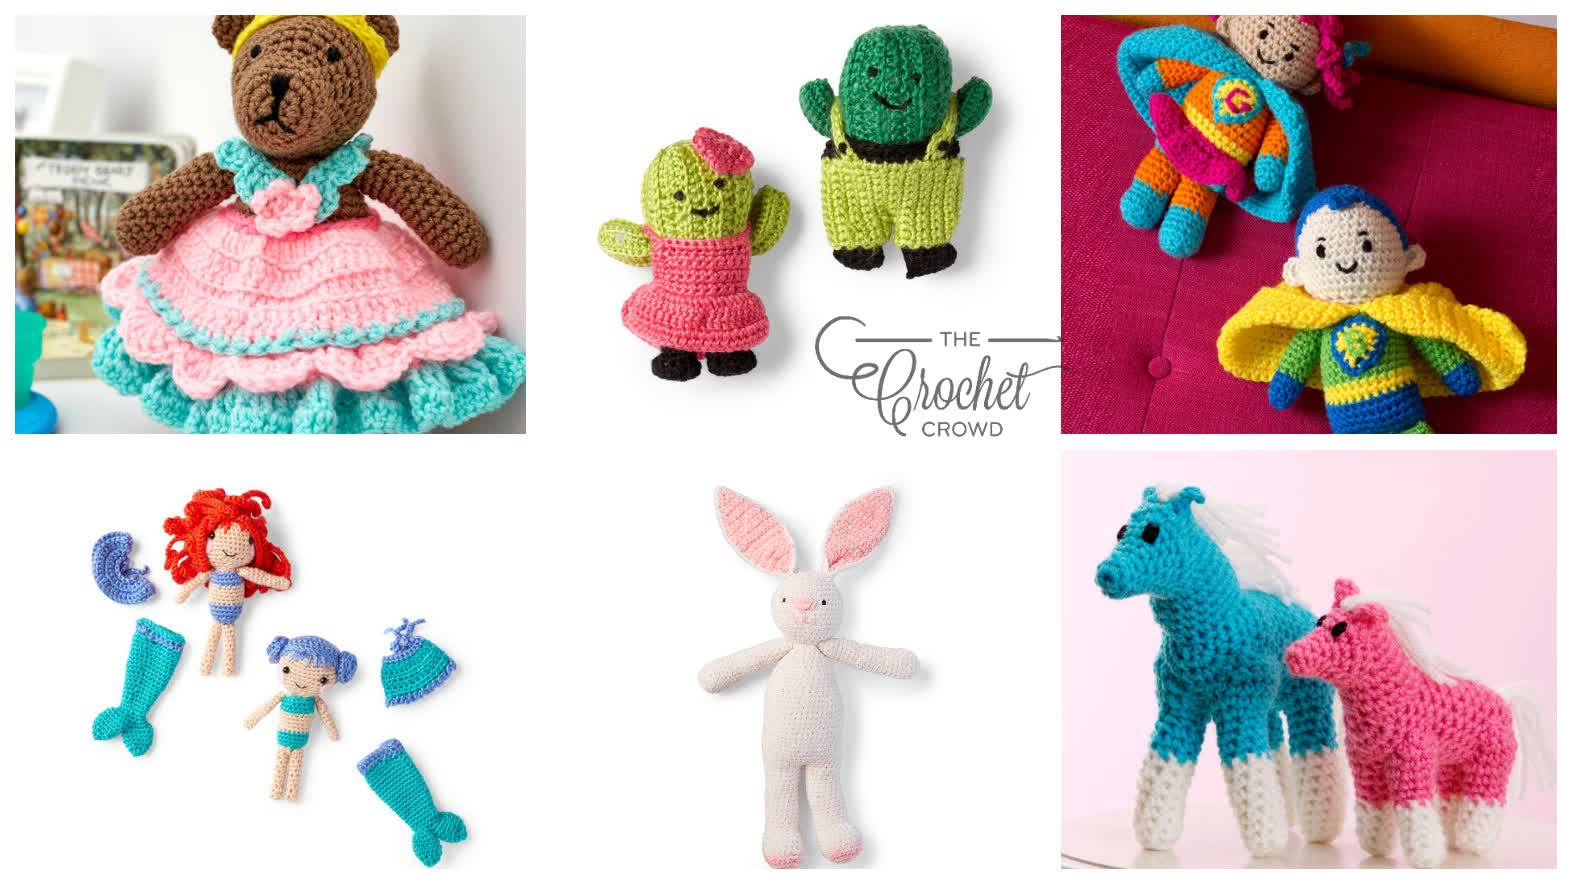 6 Crochet Stuffed with Fun Patterns